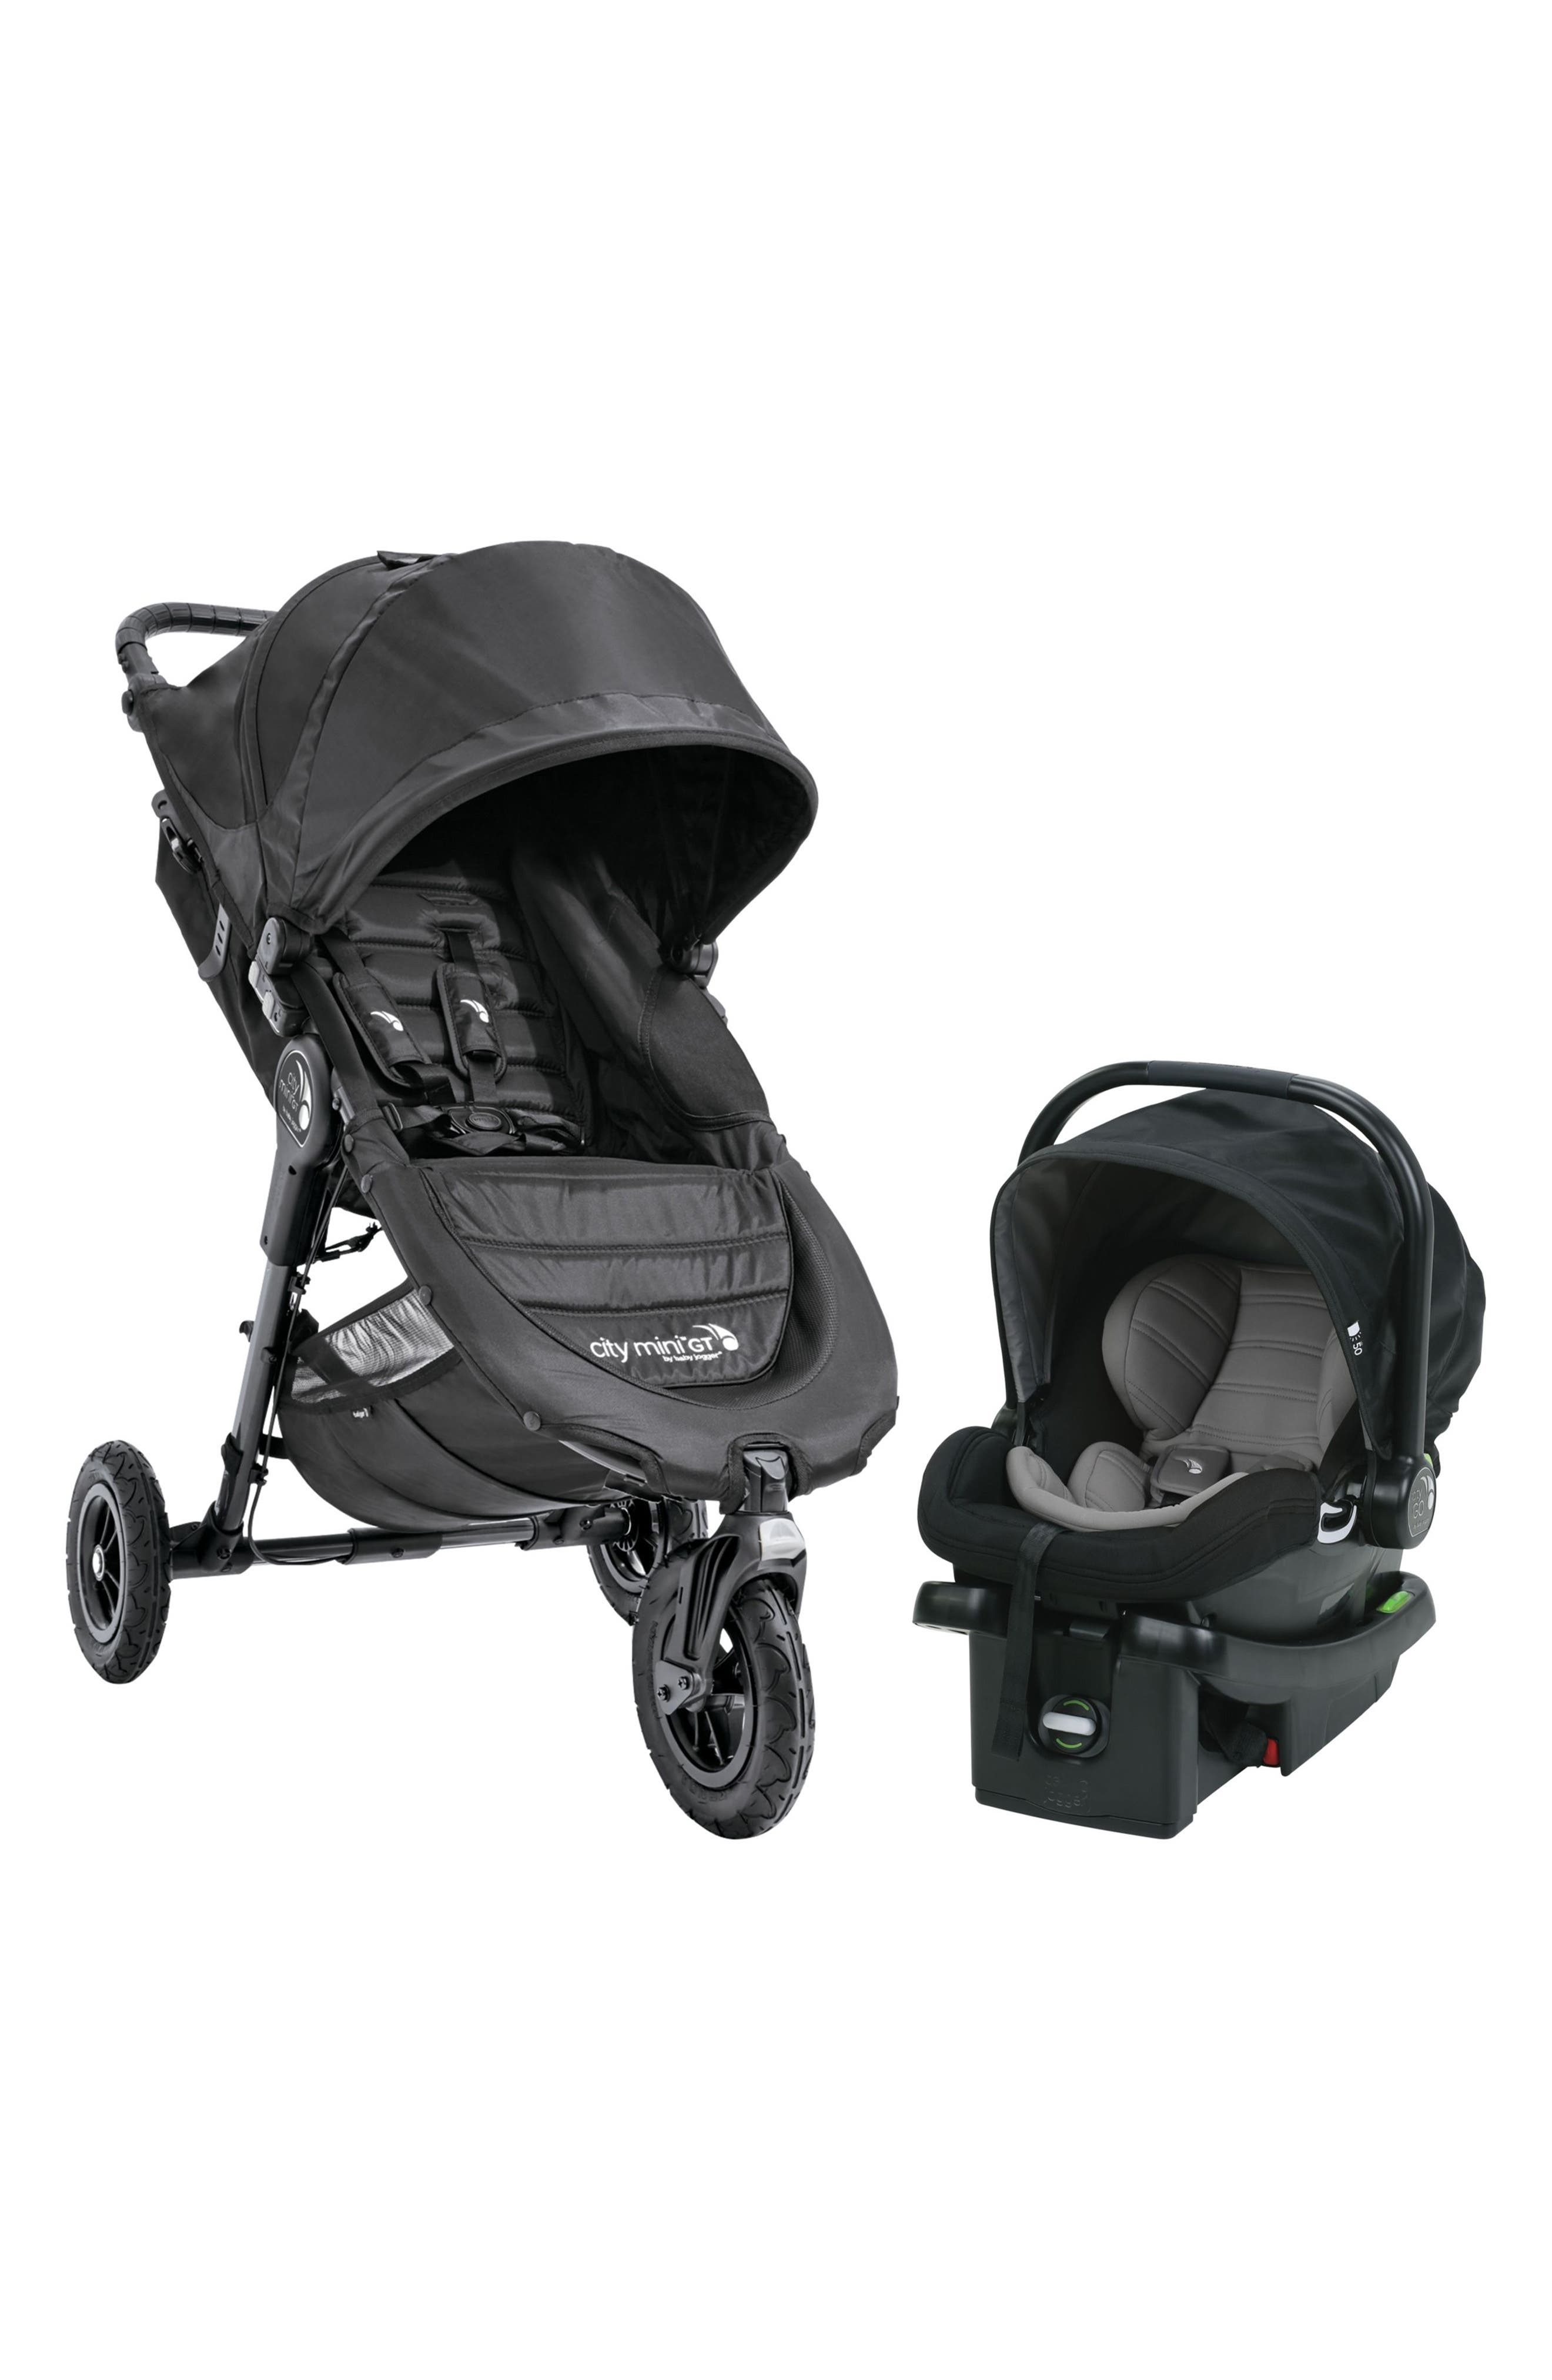 City Mini Single Stroller & City Go Infant Car Seat Travel System,                         Main,                         color, BLACK